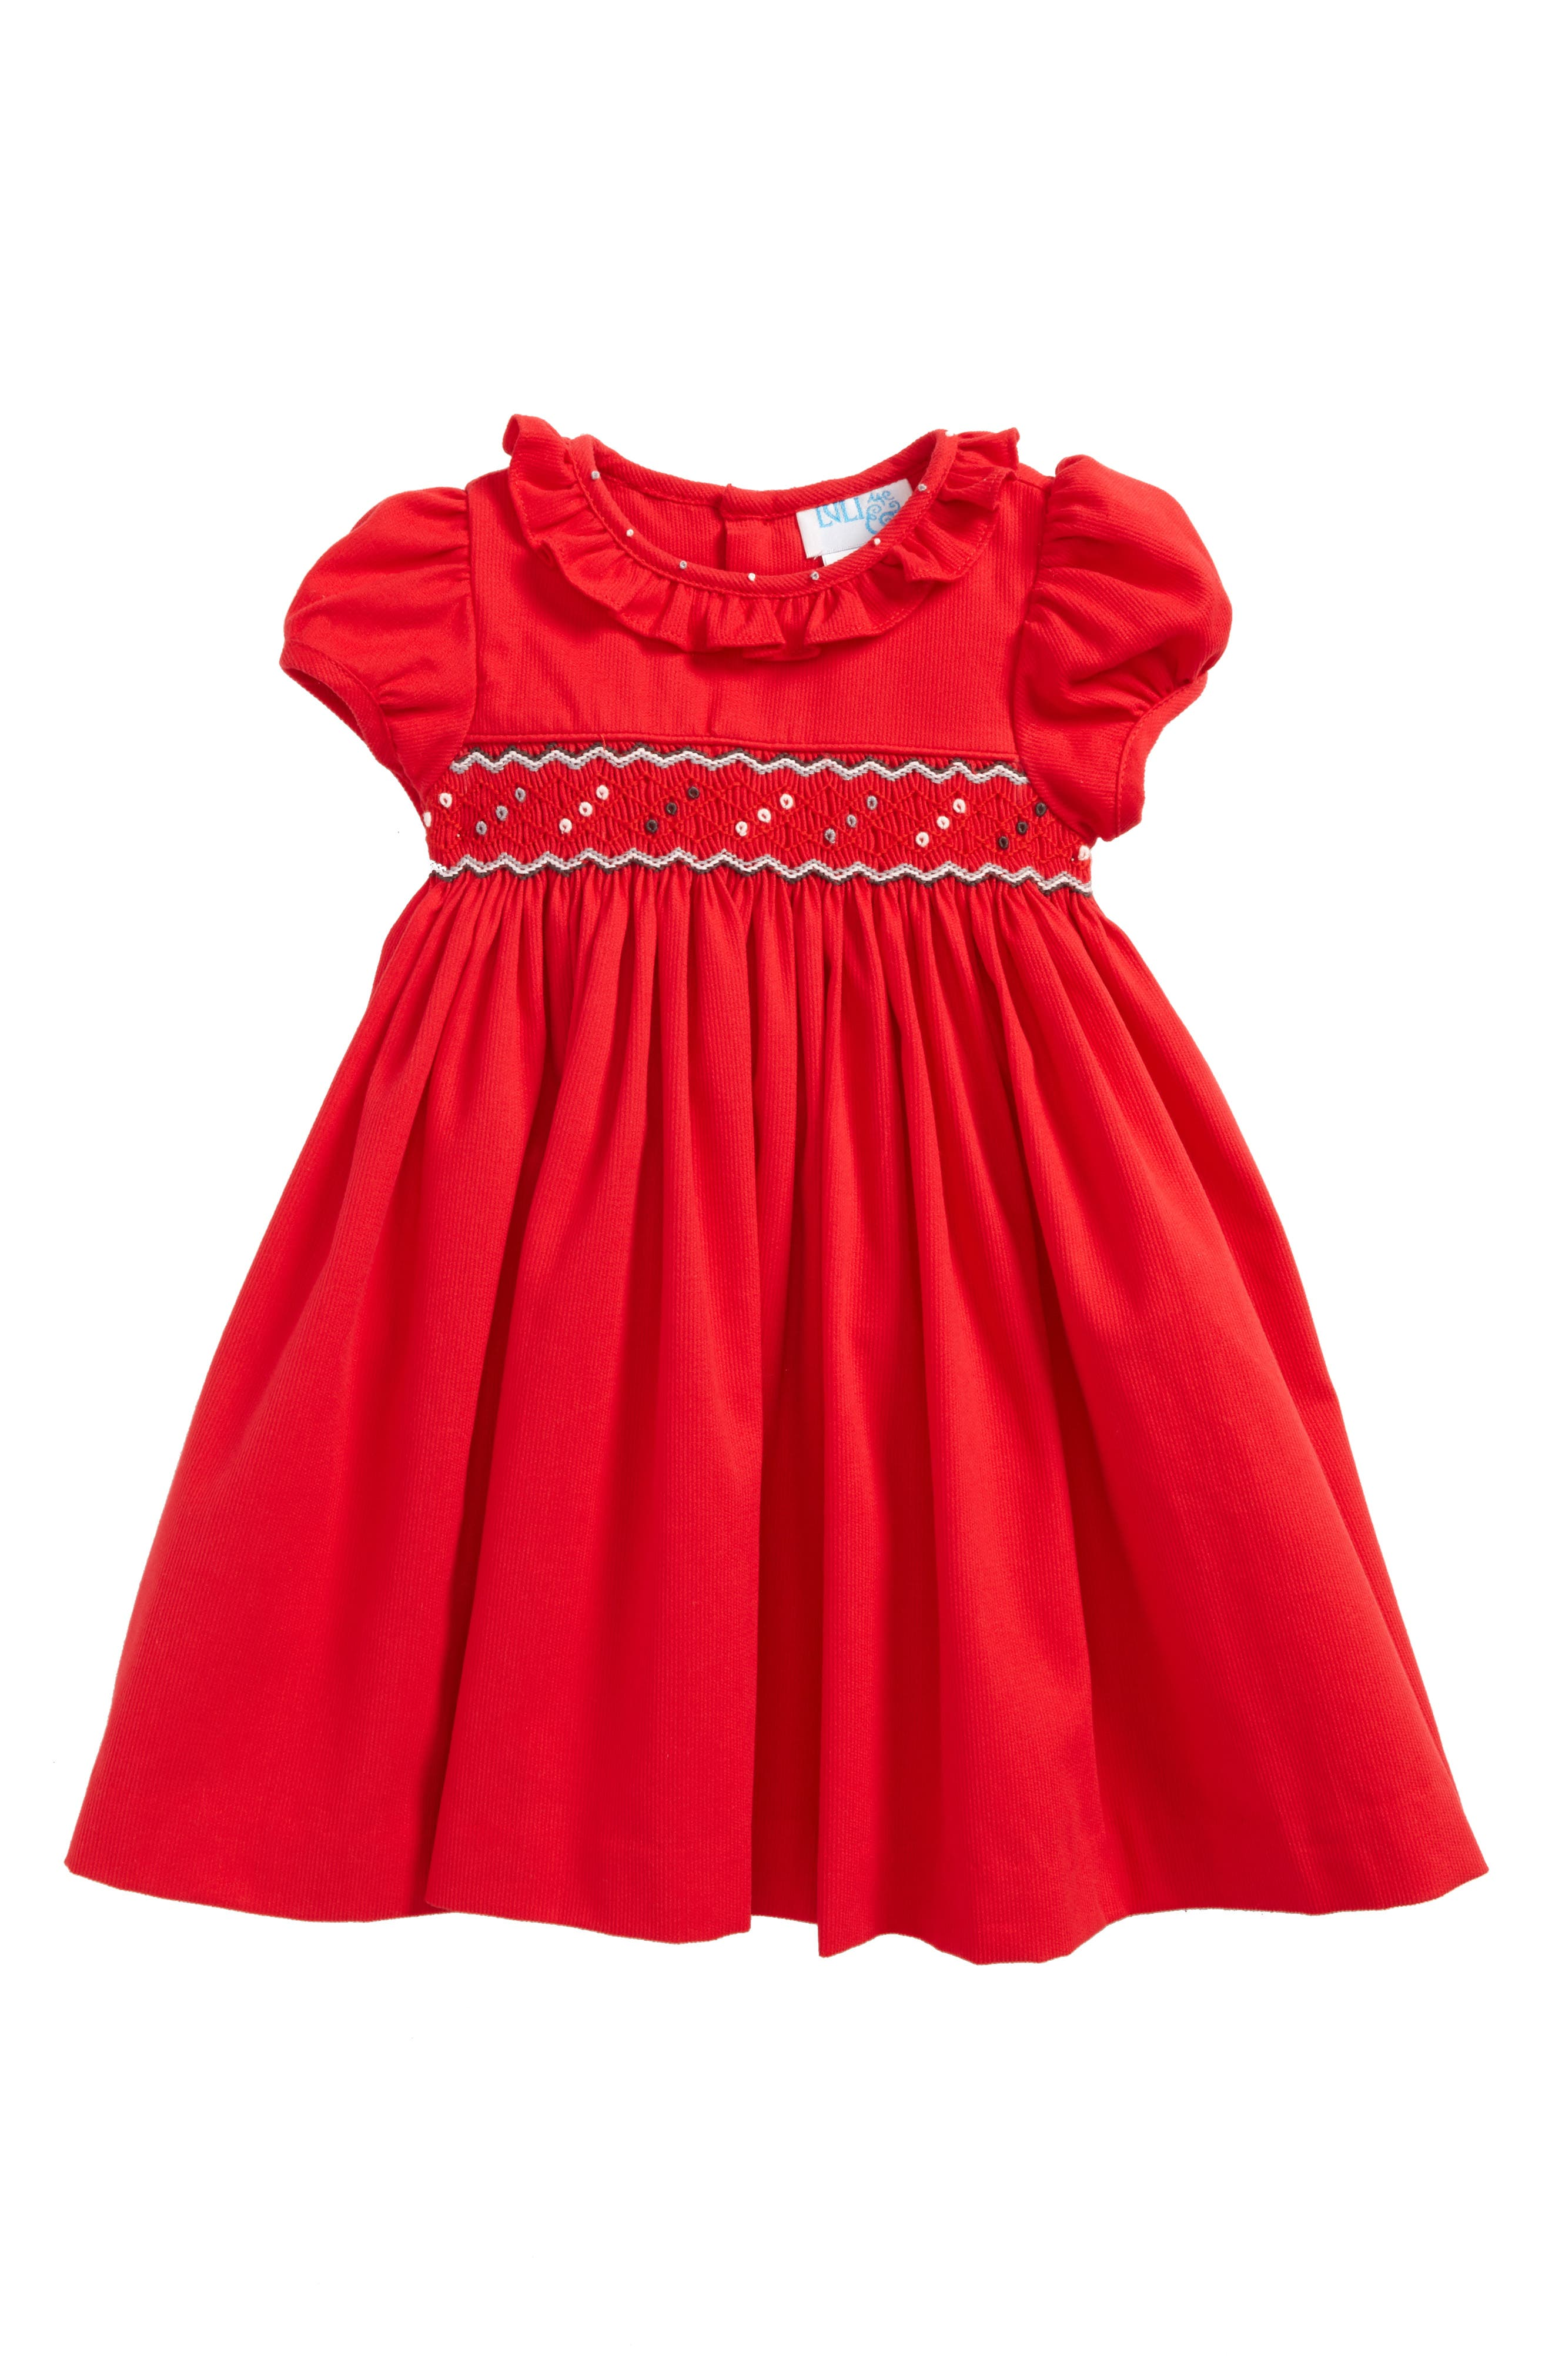 Smocked Dress,                         Main,                         color, Red